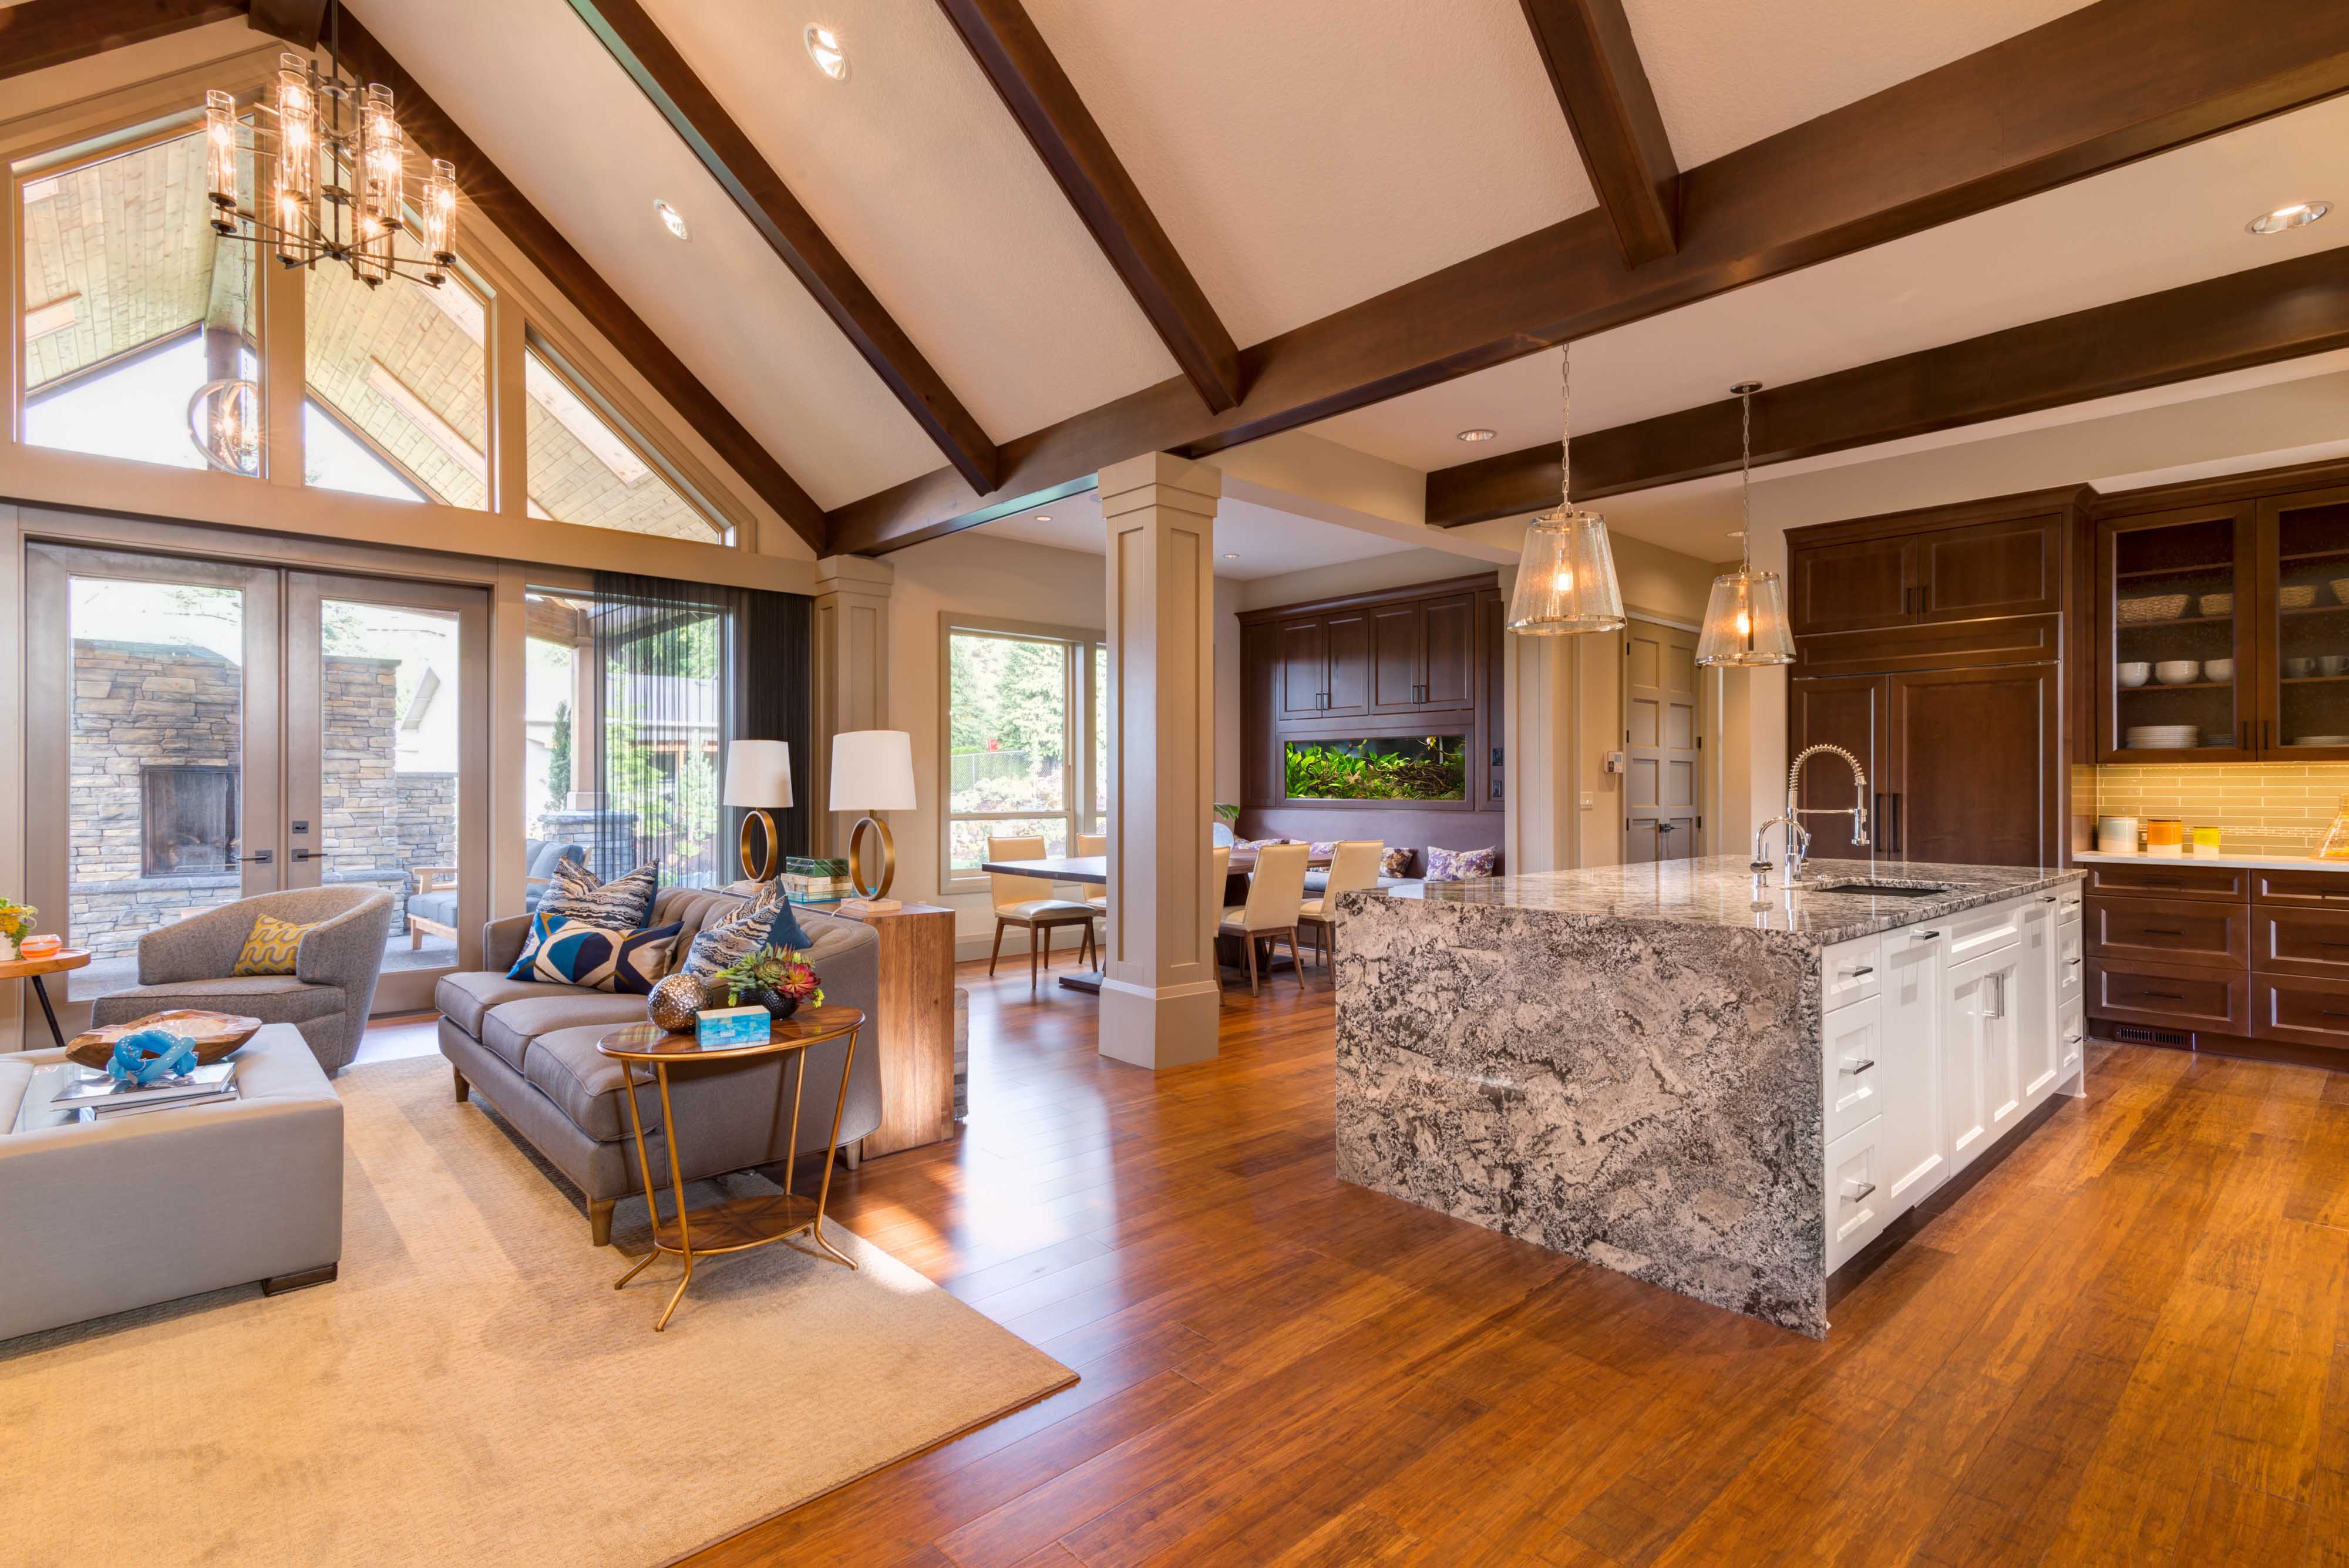 Stone, Hardwood, or Ceramic: Getting to Know Your Custom Flooring Options